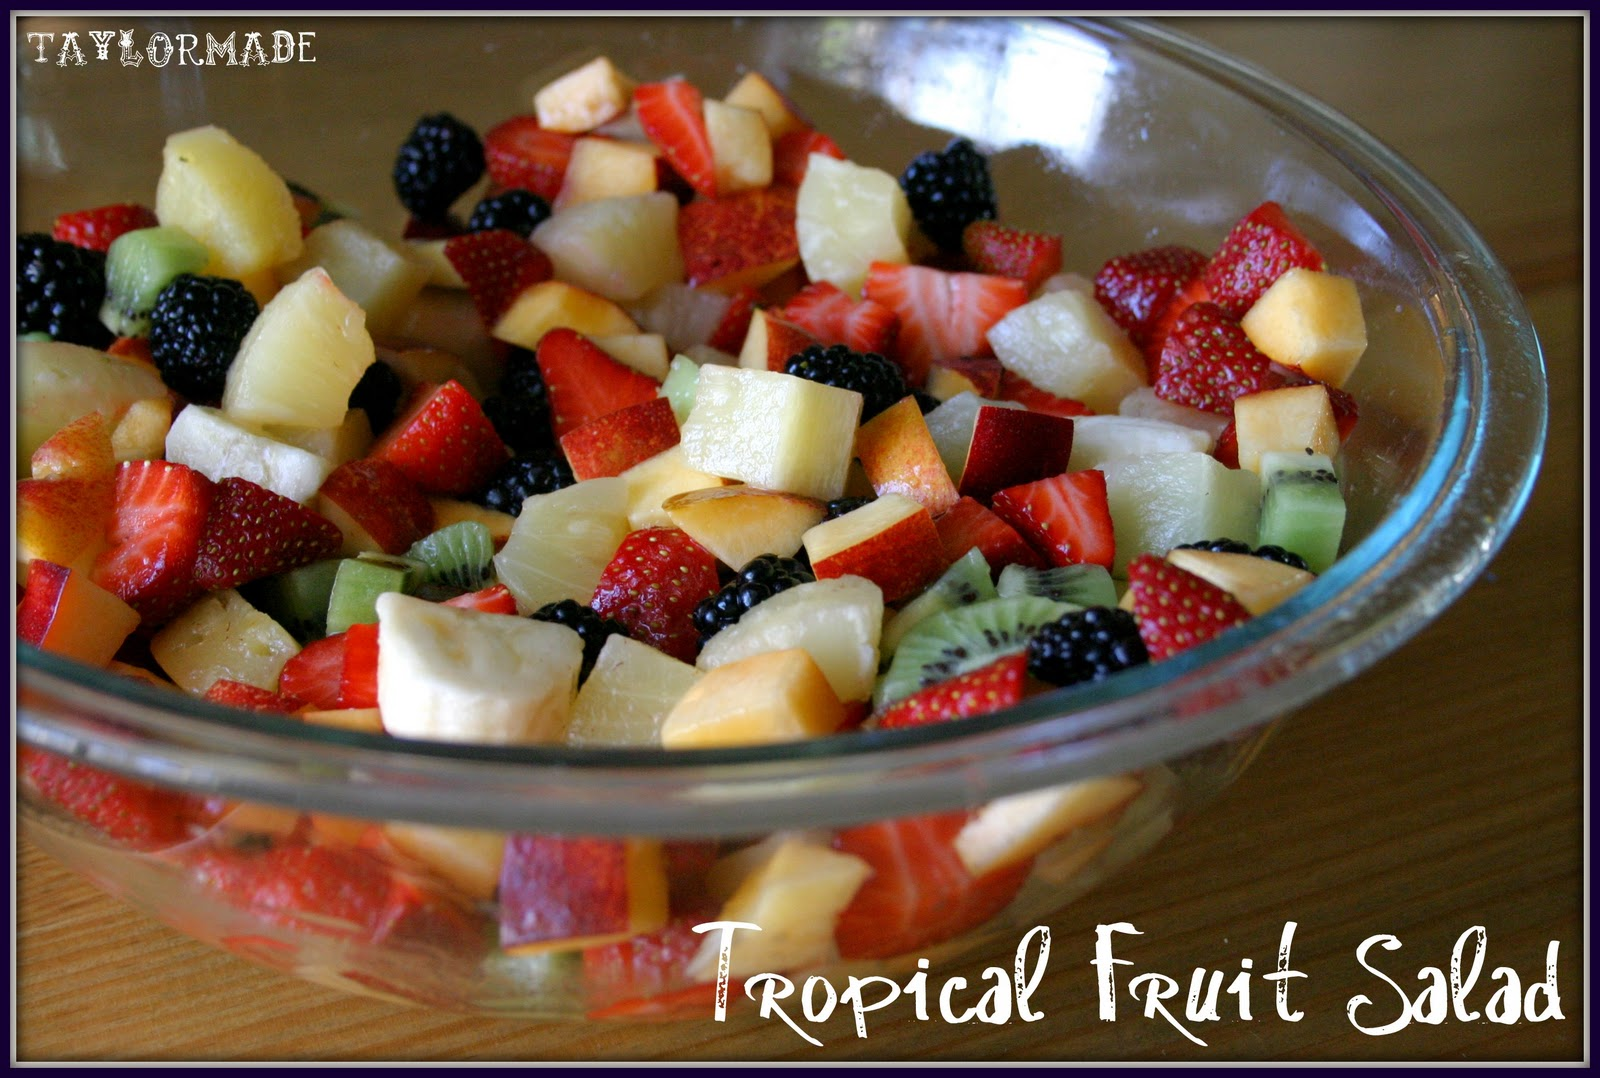 Tropical Fruit Salad - TaylorMade